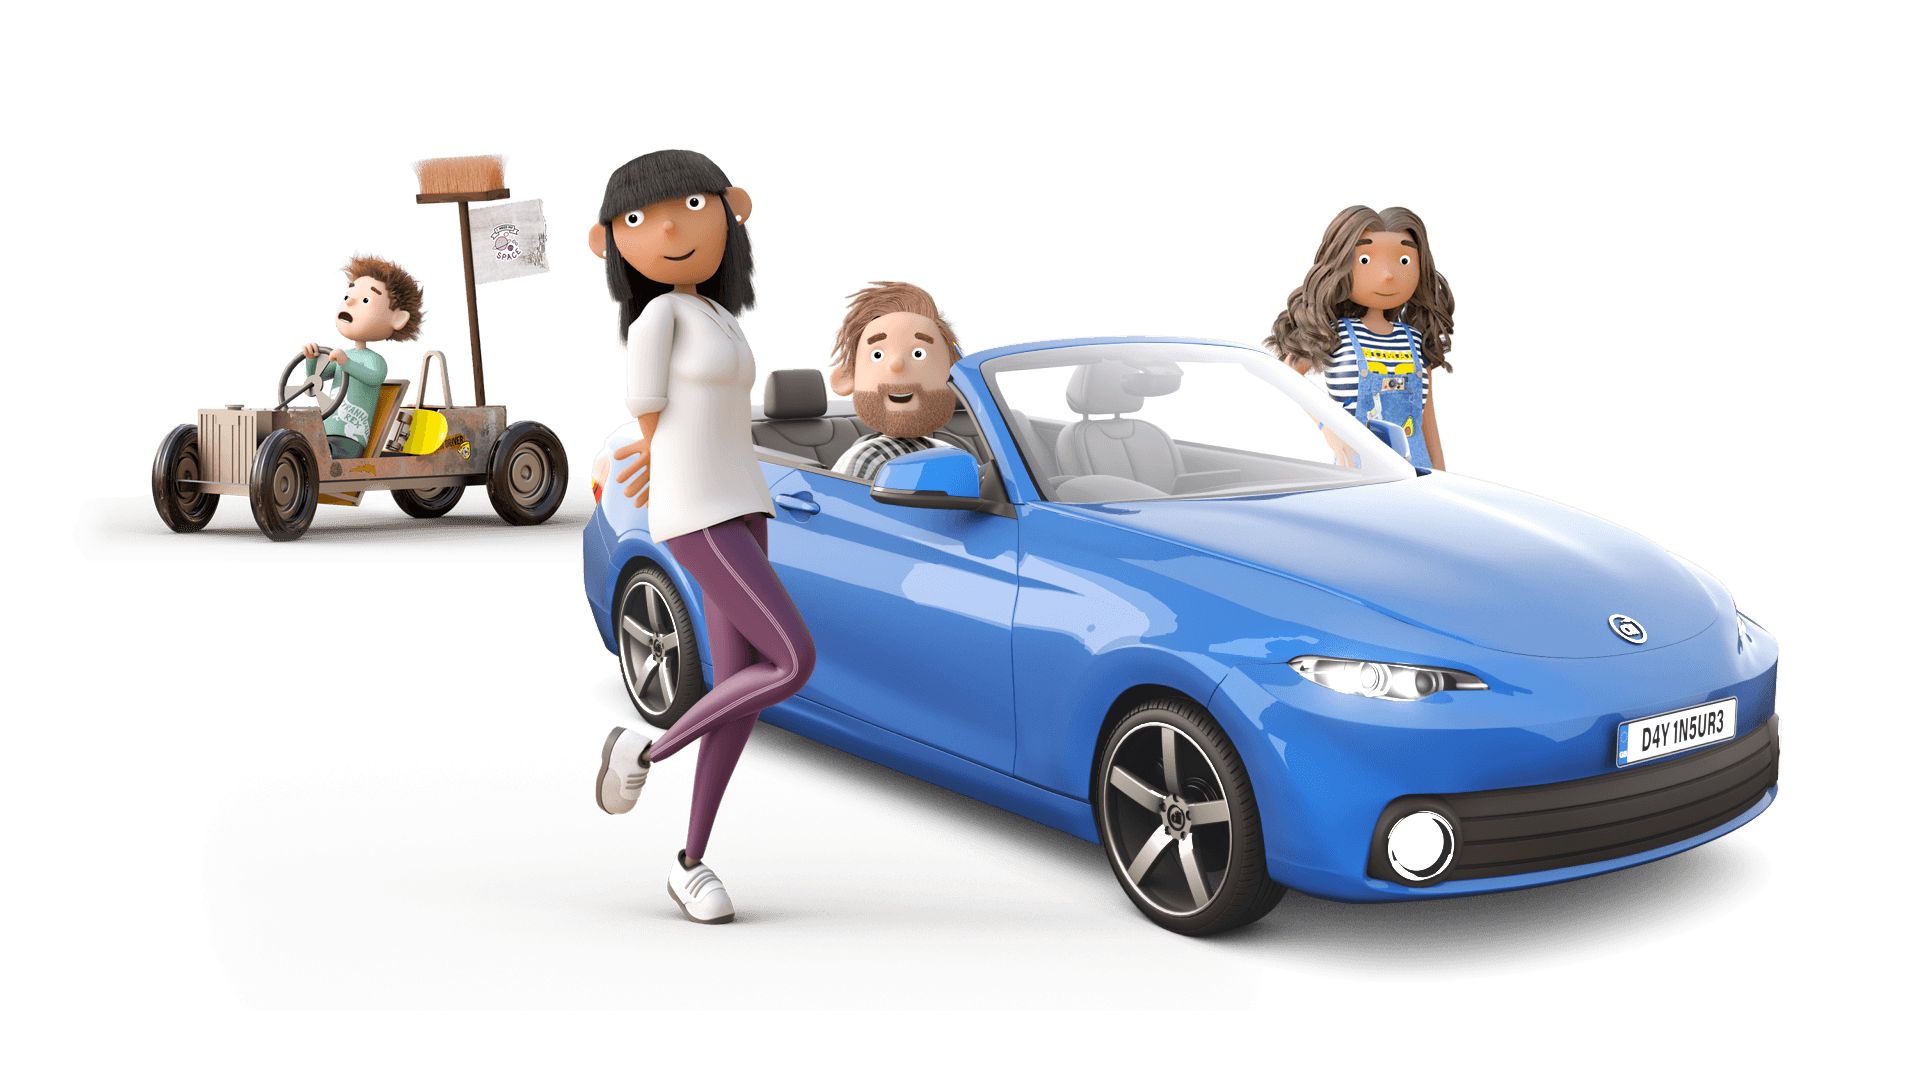 Dayinsure Family with Sports Car